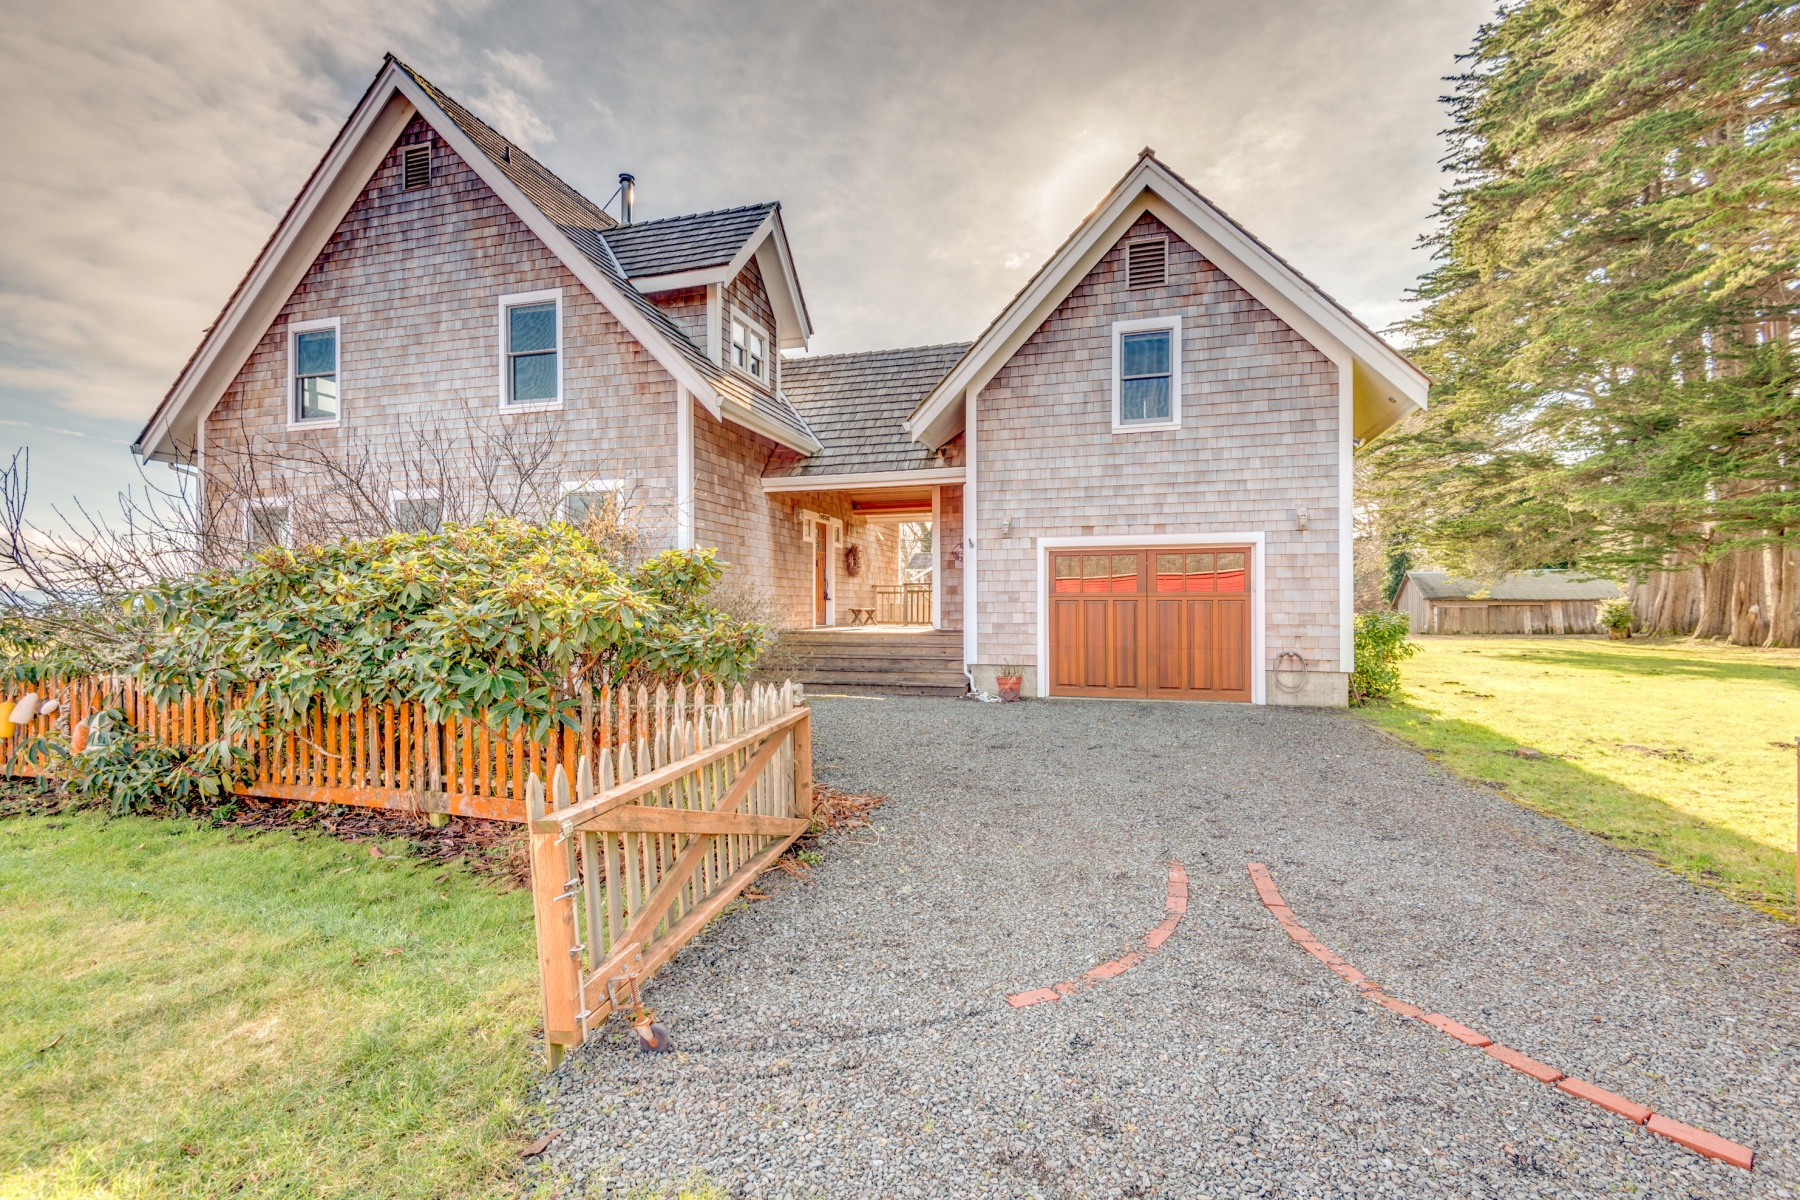 Single Family Home for Sale at Stunning Custom Home in Historic District 34008 TERRITORY Rd Oysterville, Washington 98641 United States